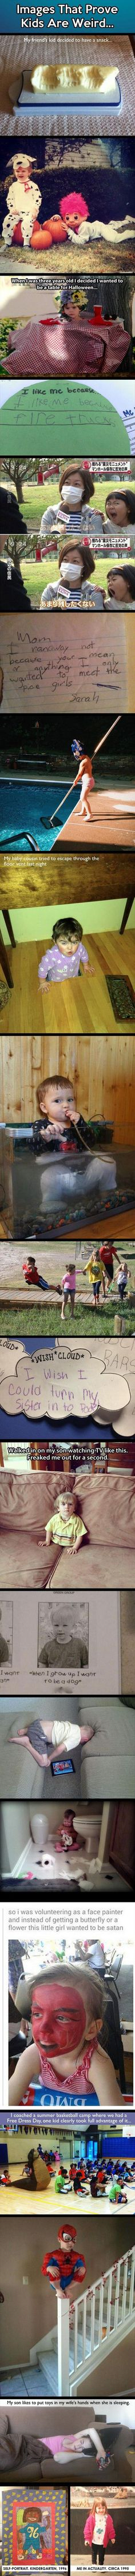 Pictures of the week, 64 images. Images That Prove Kids Are Weird (Compilation)